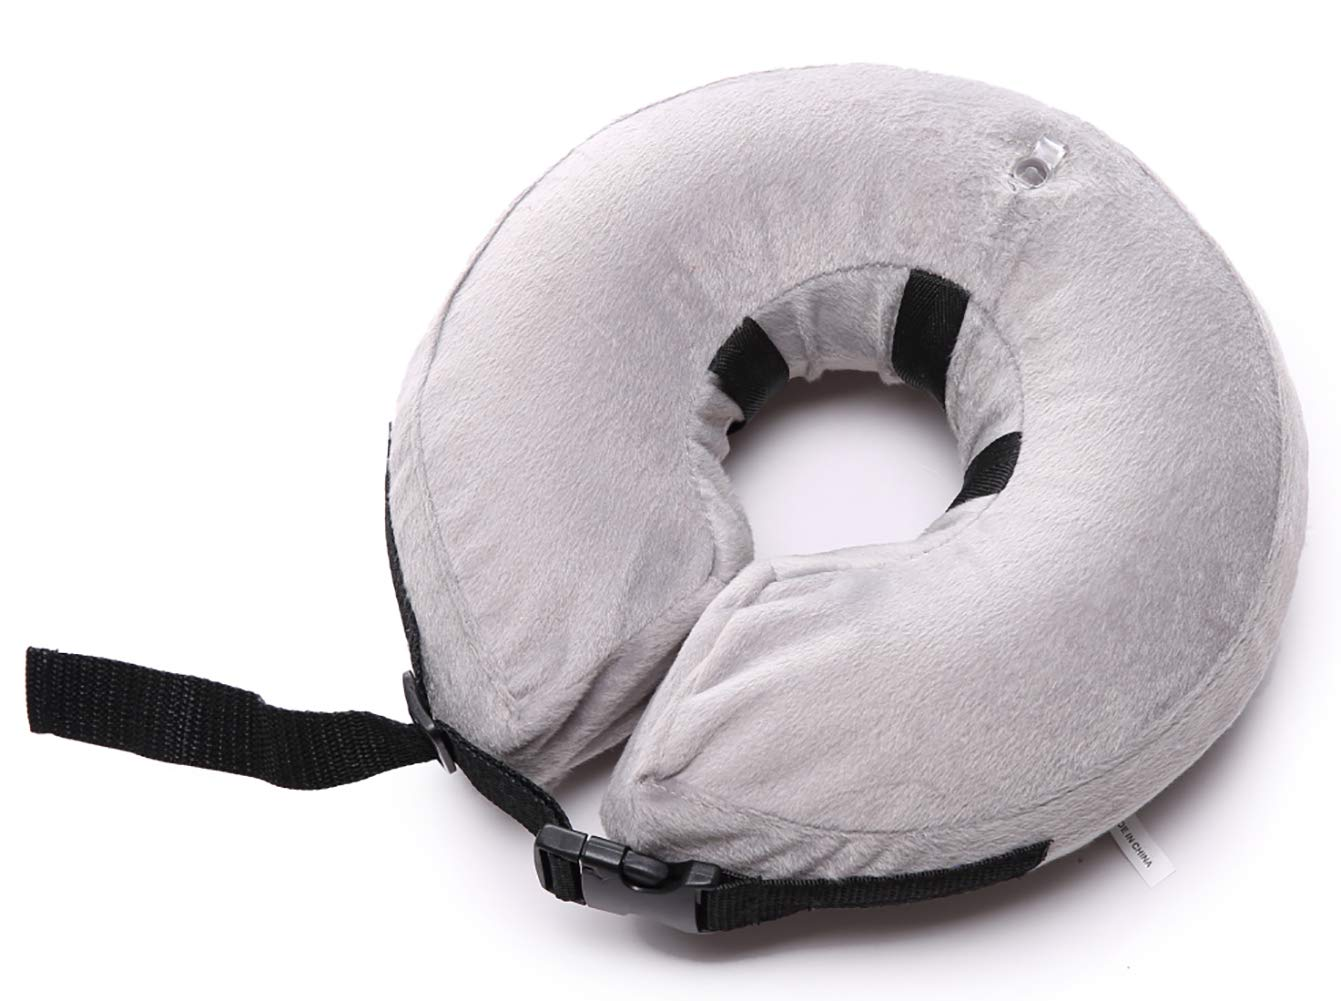 MaruPet Dog Inflatable Recovery Collar Protective Soft Detachable Washable Swimming Float Safety Does Not Block Vision E-Collar Collar Designed to Prevent Pets from Touching Stitches Gray M